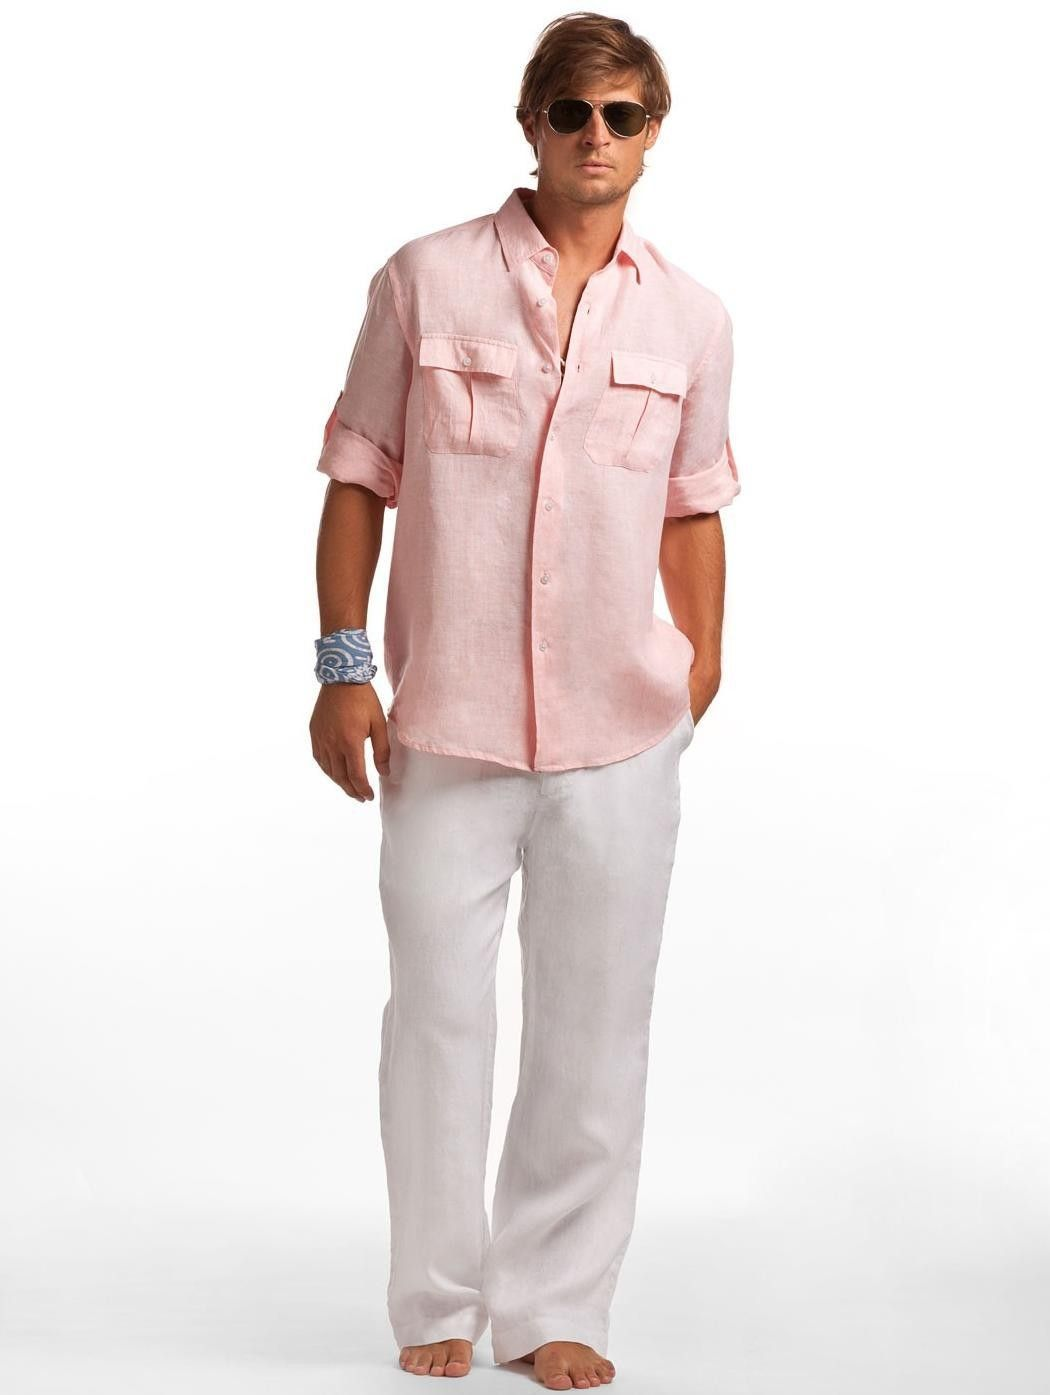 402c6dc13d3 Sunrise Linen Pilot Shirt - Men s Resort Wear